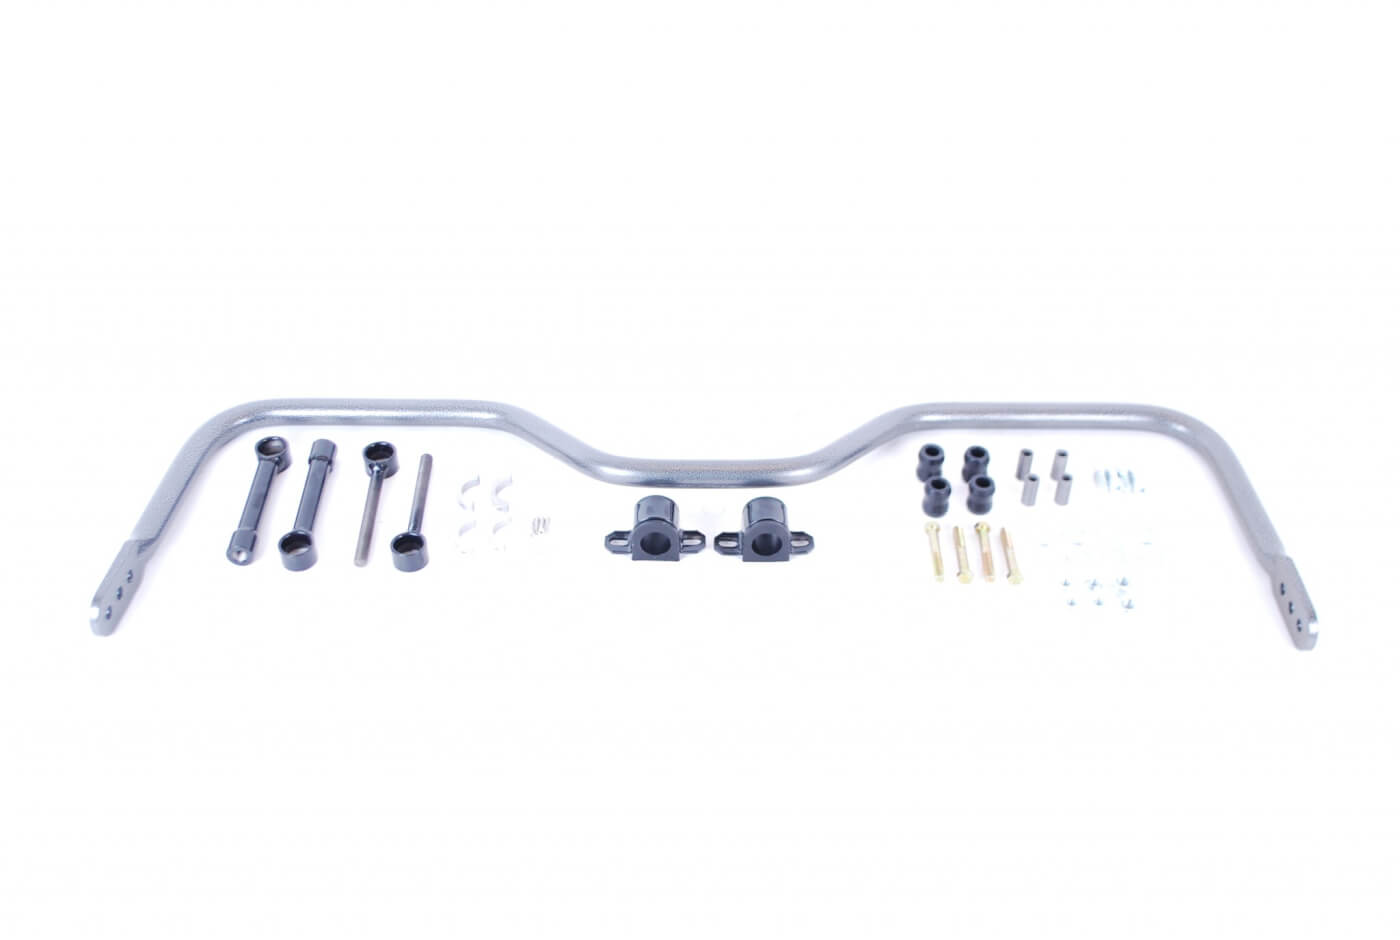 Upgrades To Improve Your Towing 2002 Ford F750 Wiring Diagram Hellwig Big Wig Sway Bars